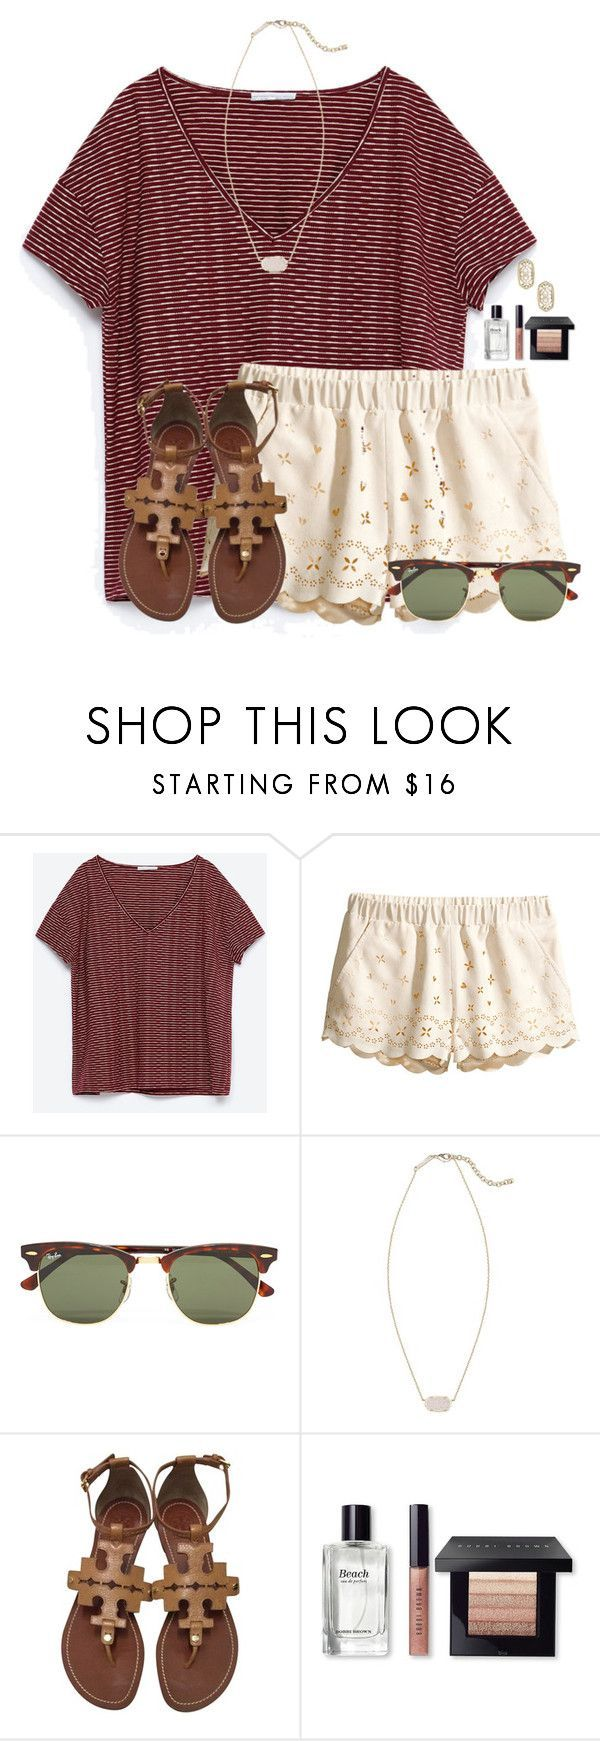 ~wind in my hair~ by flroasburn on Polyvore featuring Zara, HM, Ray-Ban, Kendra Scott, Tory Burch and Bobbi Brown Cosmetics